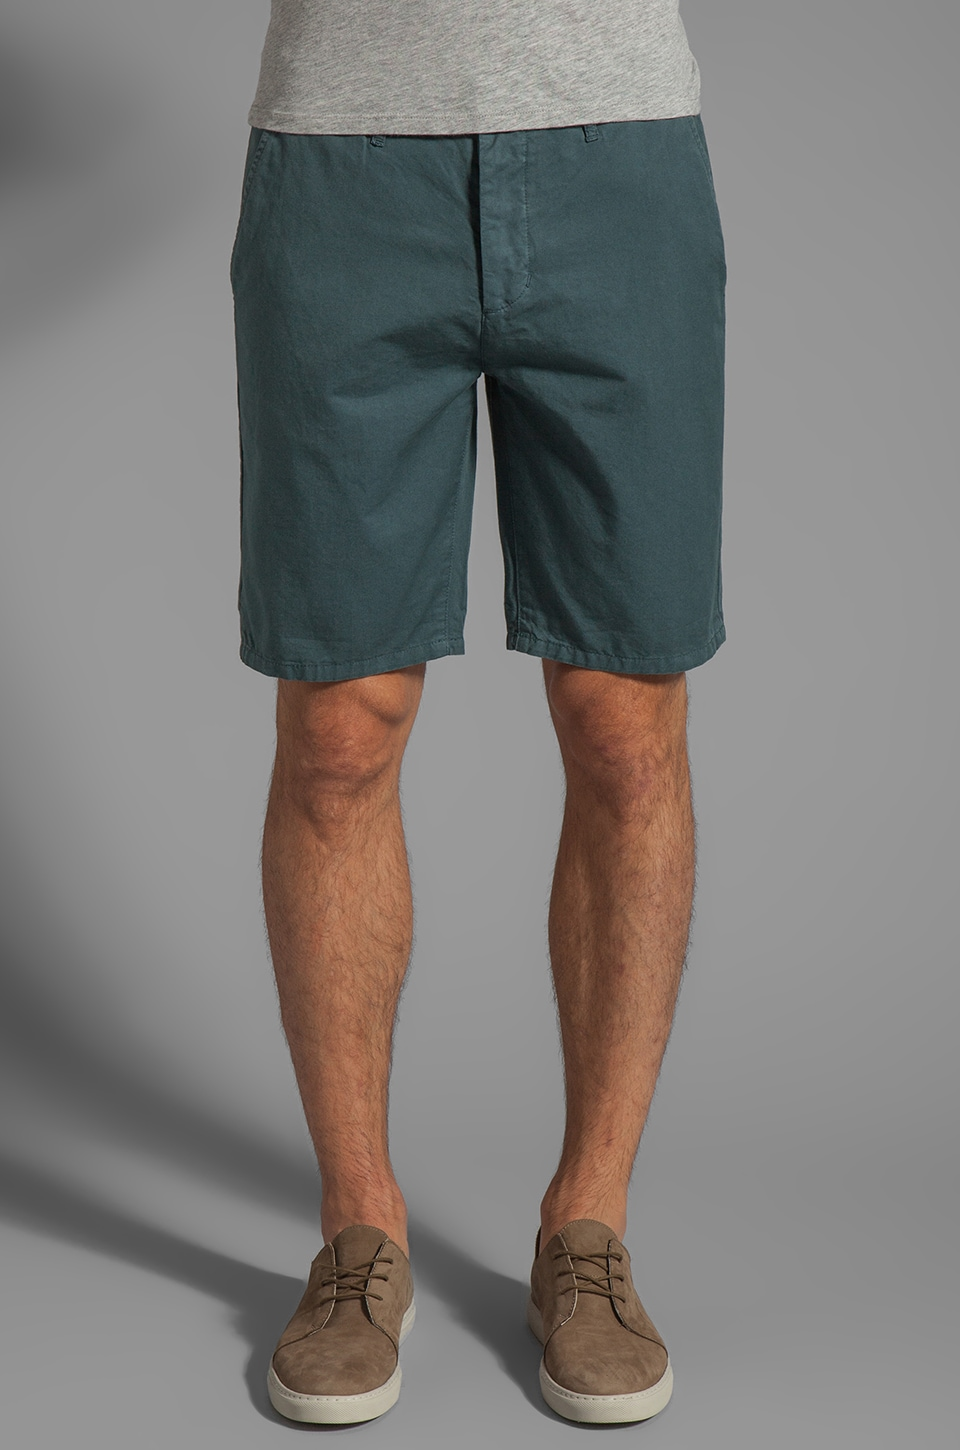 Obey Classique Short in Hydro